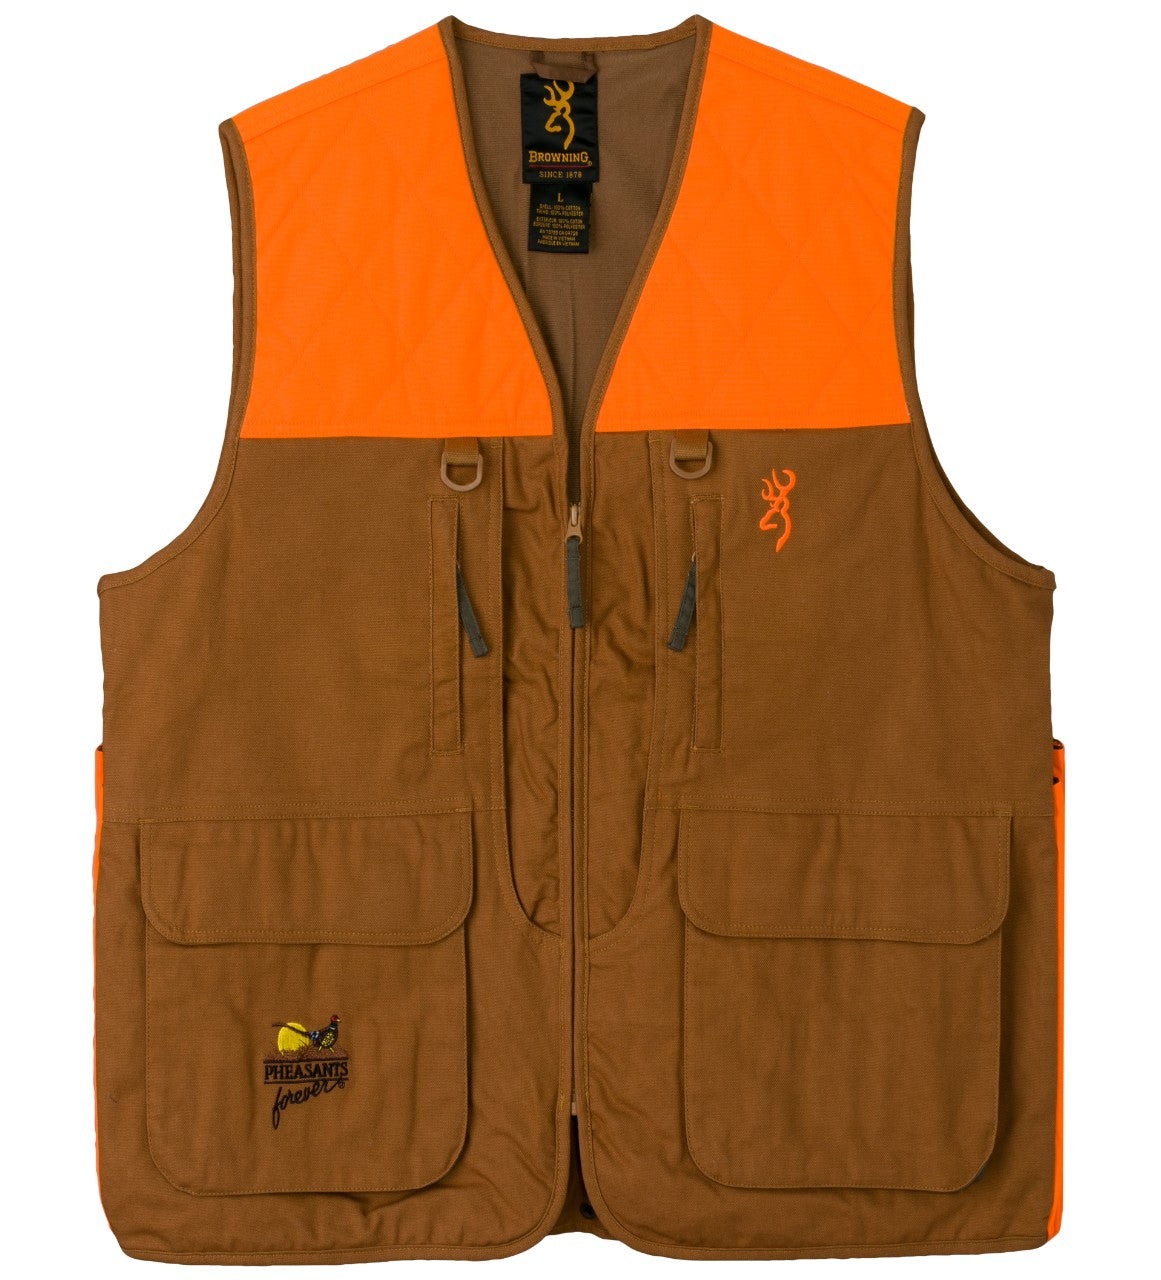 Pheasants Forever Vest with Pheasants Forever Embroidery